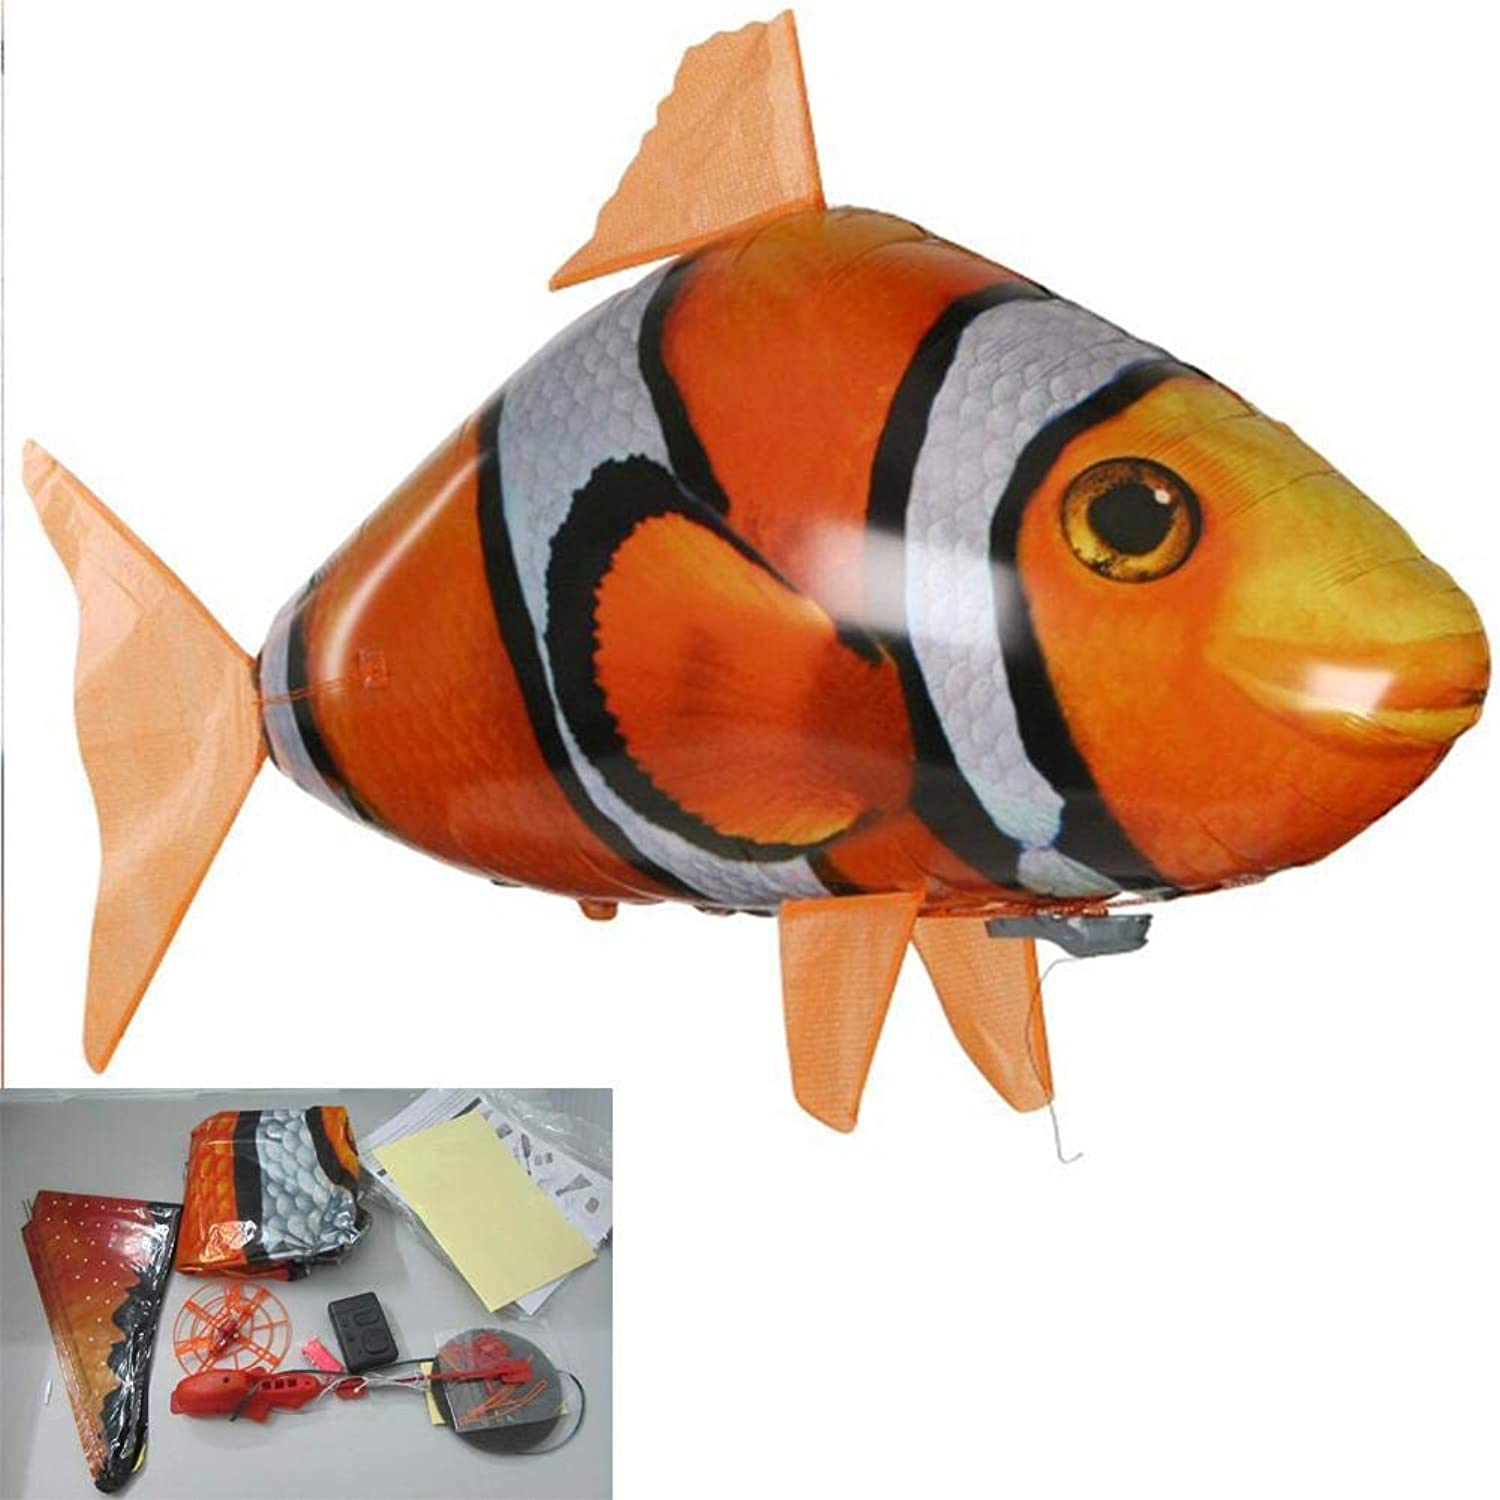 Generic Remote Control Shark Toys Air Swimming Fish Infrared Rc Flying Air Balloons Nemo Clown Fish Kids Toys Gifts Party Decoration 2